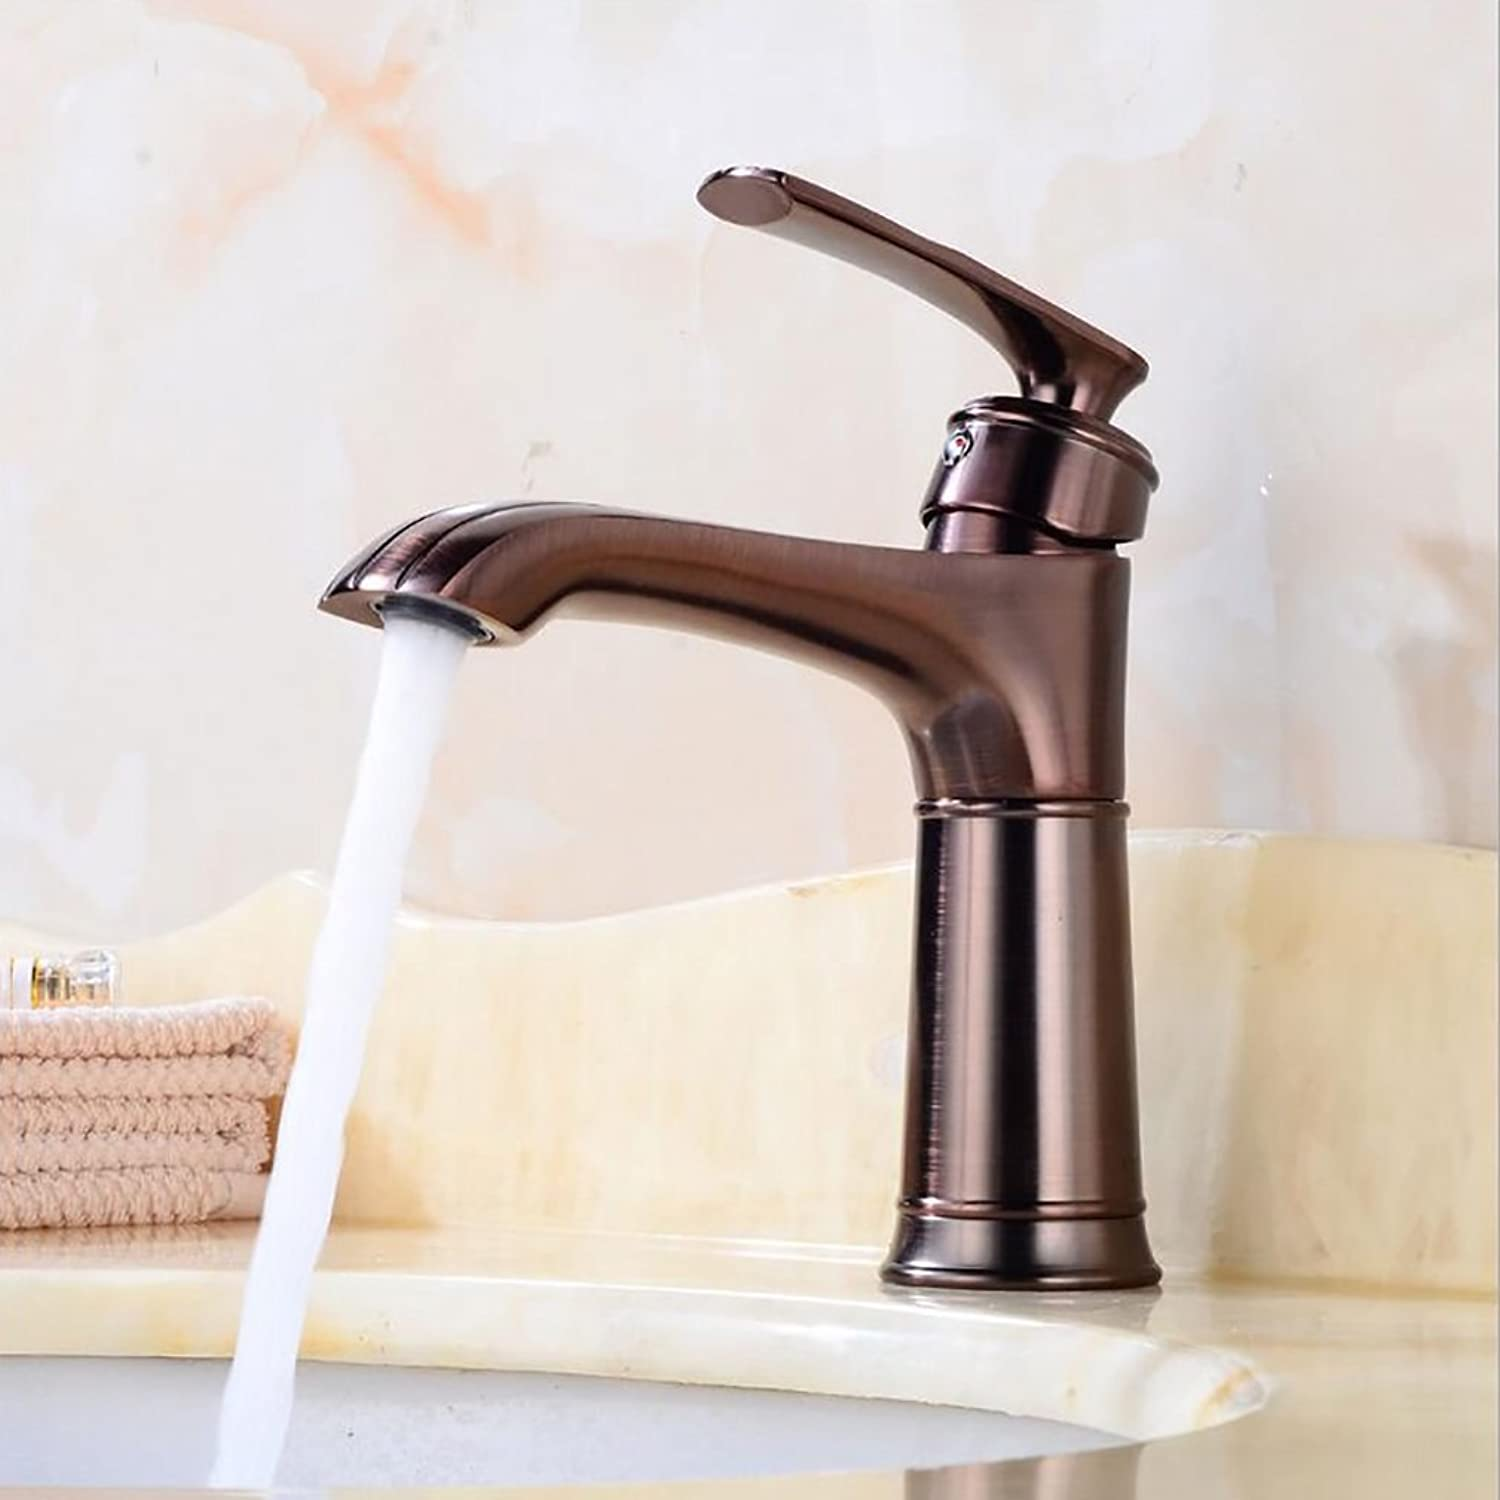 Bathroom accessories, easy to use and user-friendl Taps,European Style Basin Tap ,Bathroom Counter Basin Faucet,Hot And Cold Single Hole Mixer Taps XIAHE